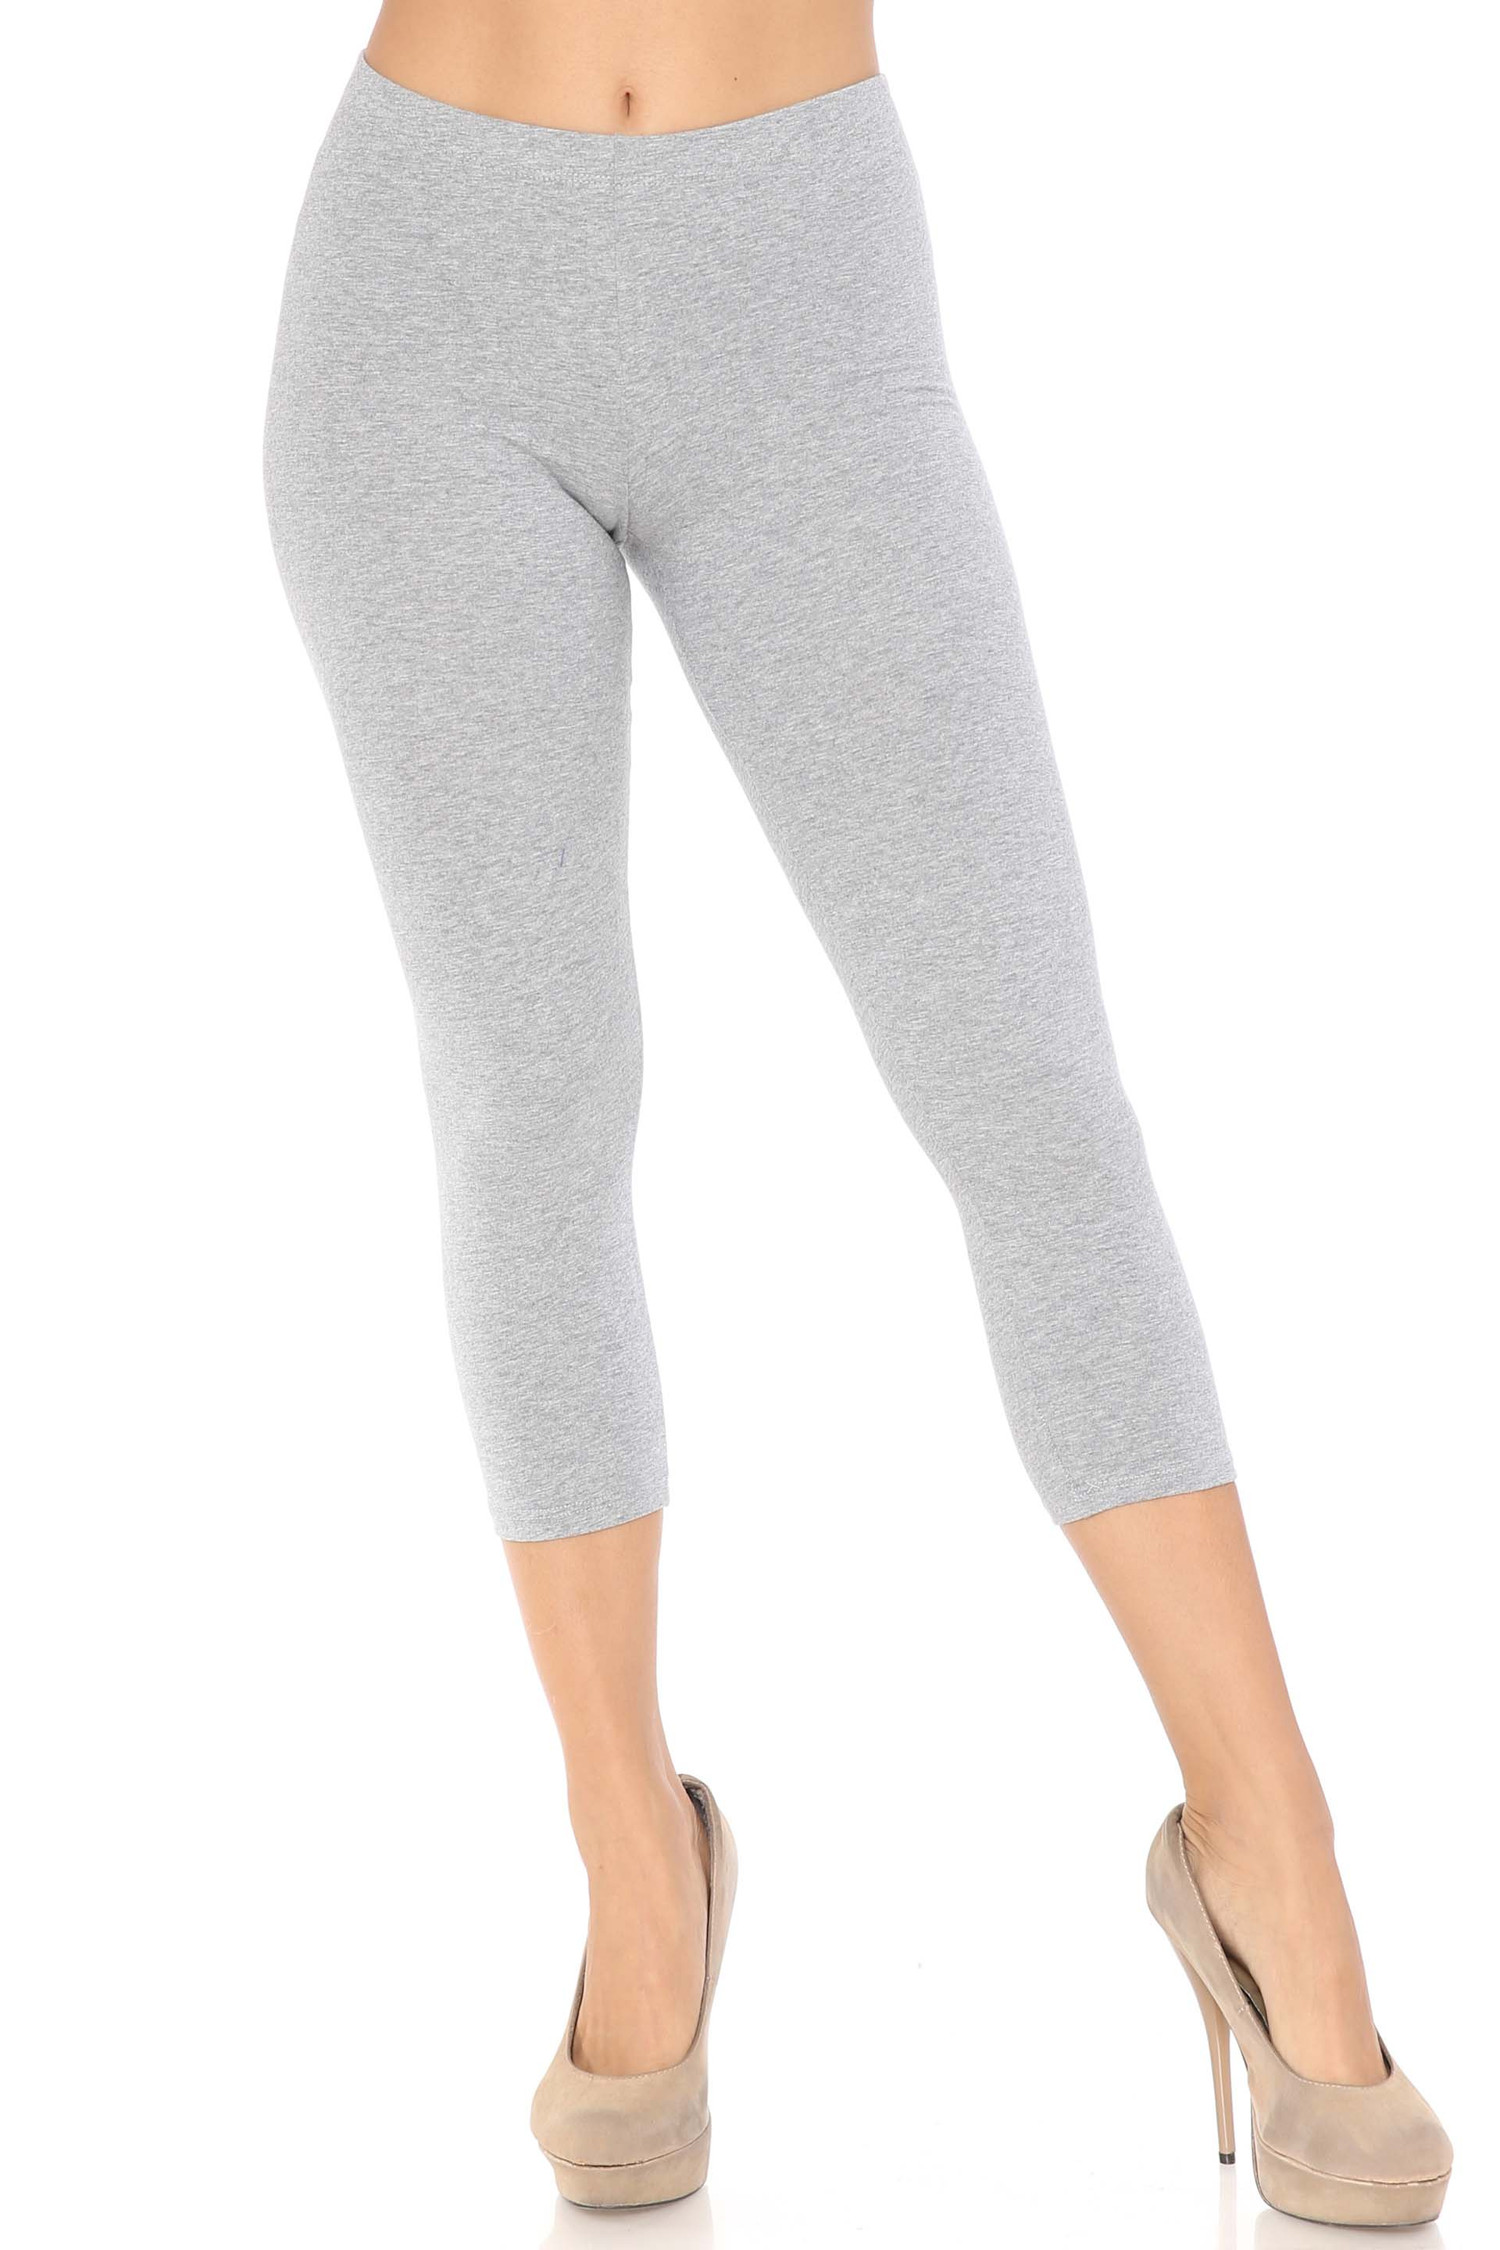 Front view of heather gray USA Cotton Capri Length Leggings